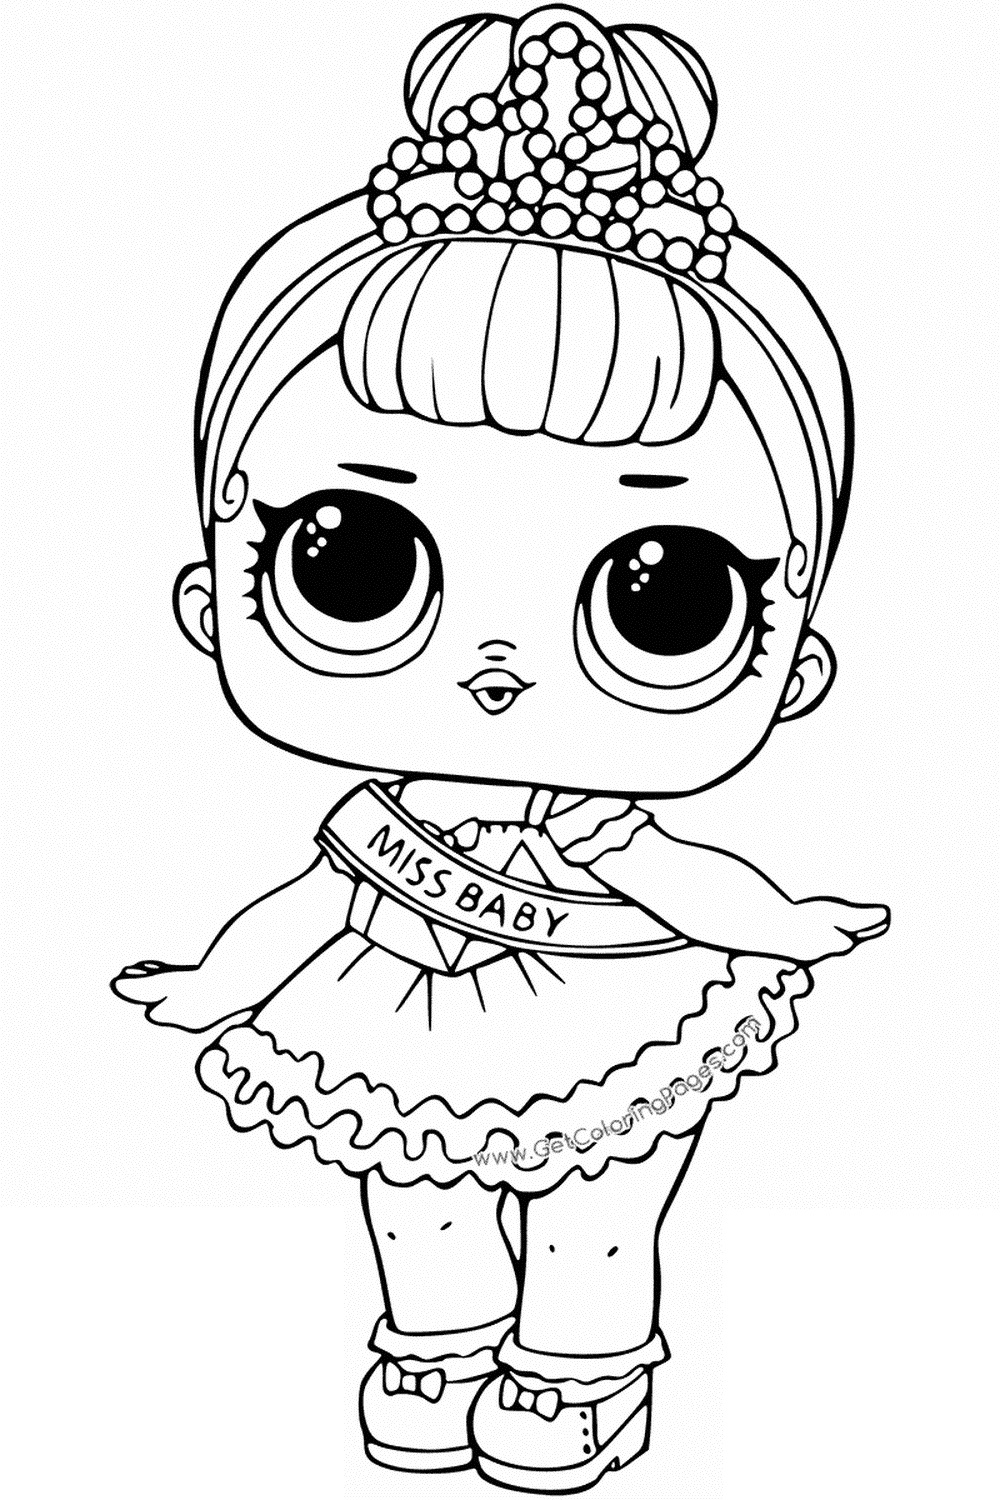 Lol Surprise Dolls Coloring Pages Print Them For Free All The Series Dinosaur Coloring Pages Puppy Coloring Pages Cartoon Coloring Pages